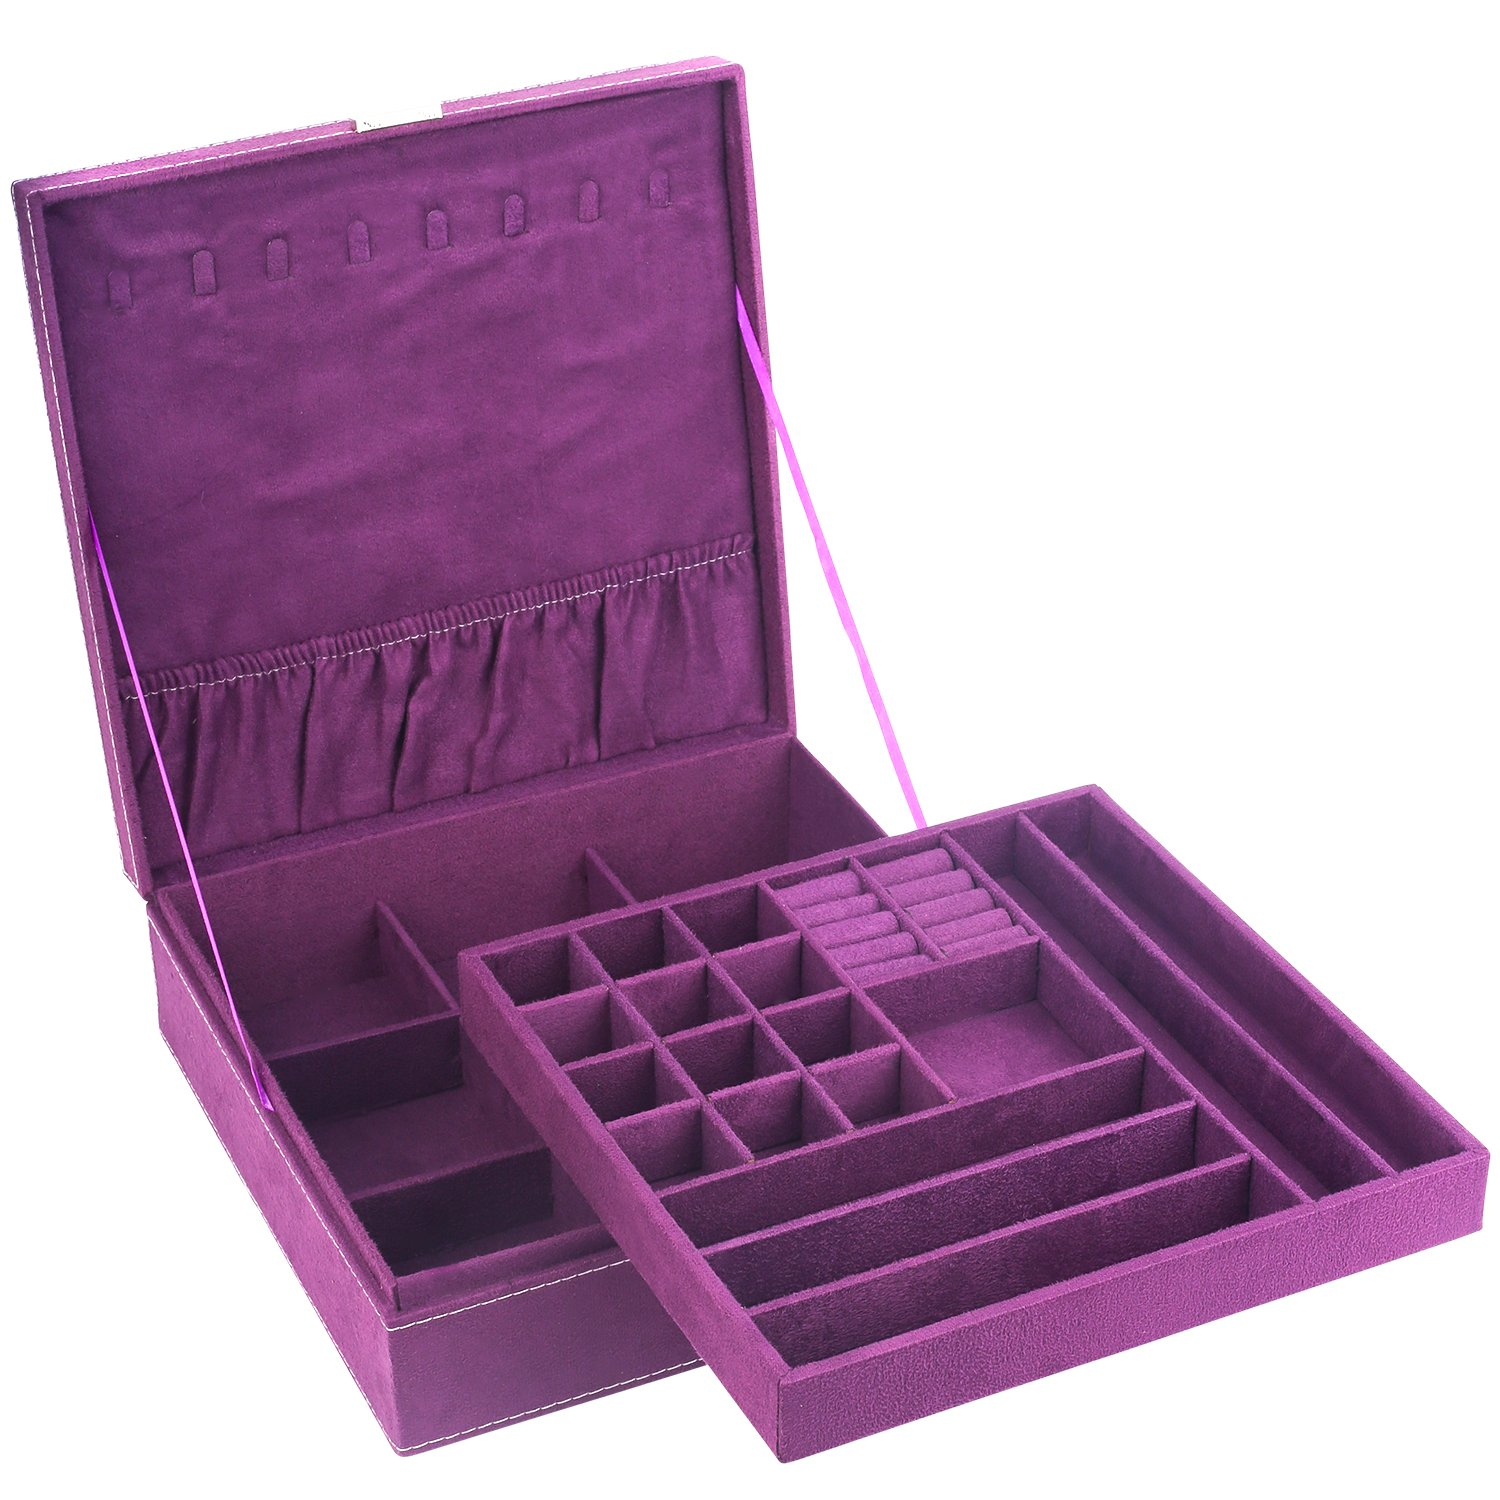 Mantello Two-Layer Lint Jewelry Organizer Box Storage Case with Lock, Purple by Mantello